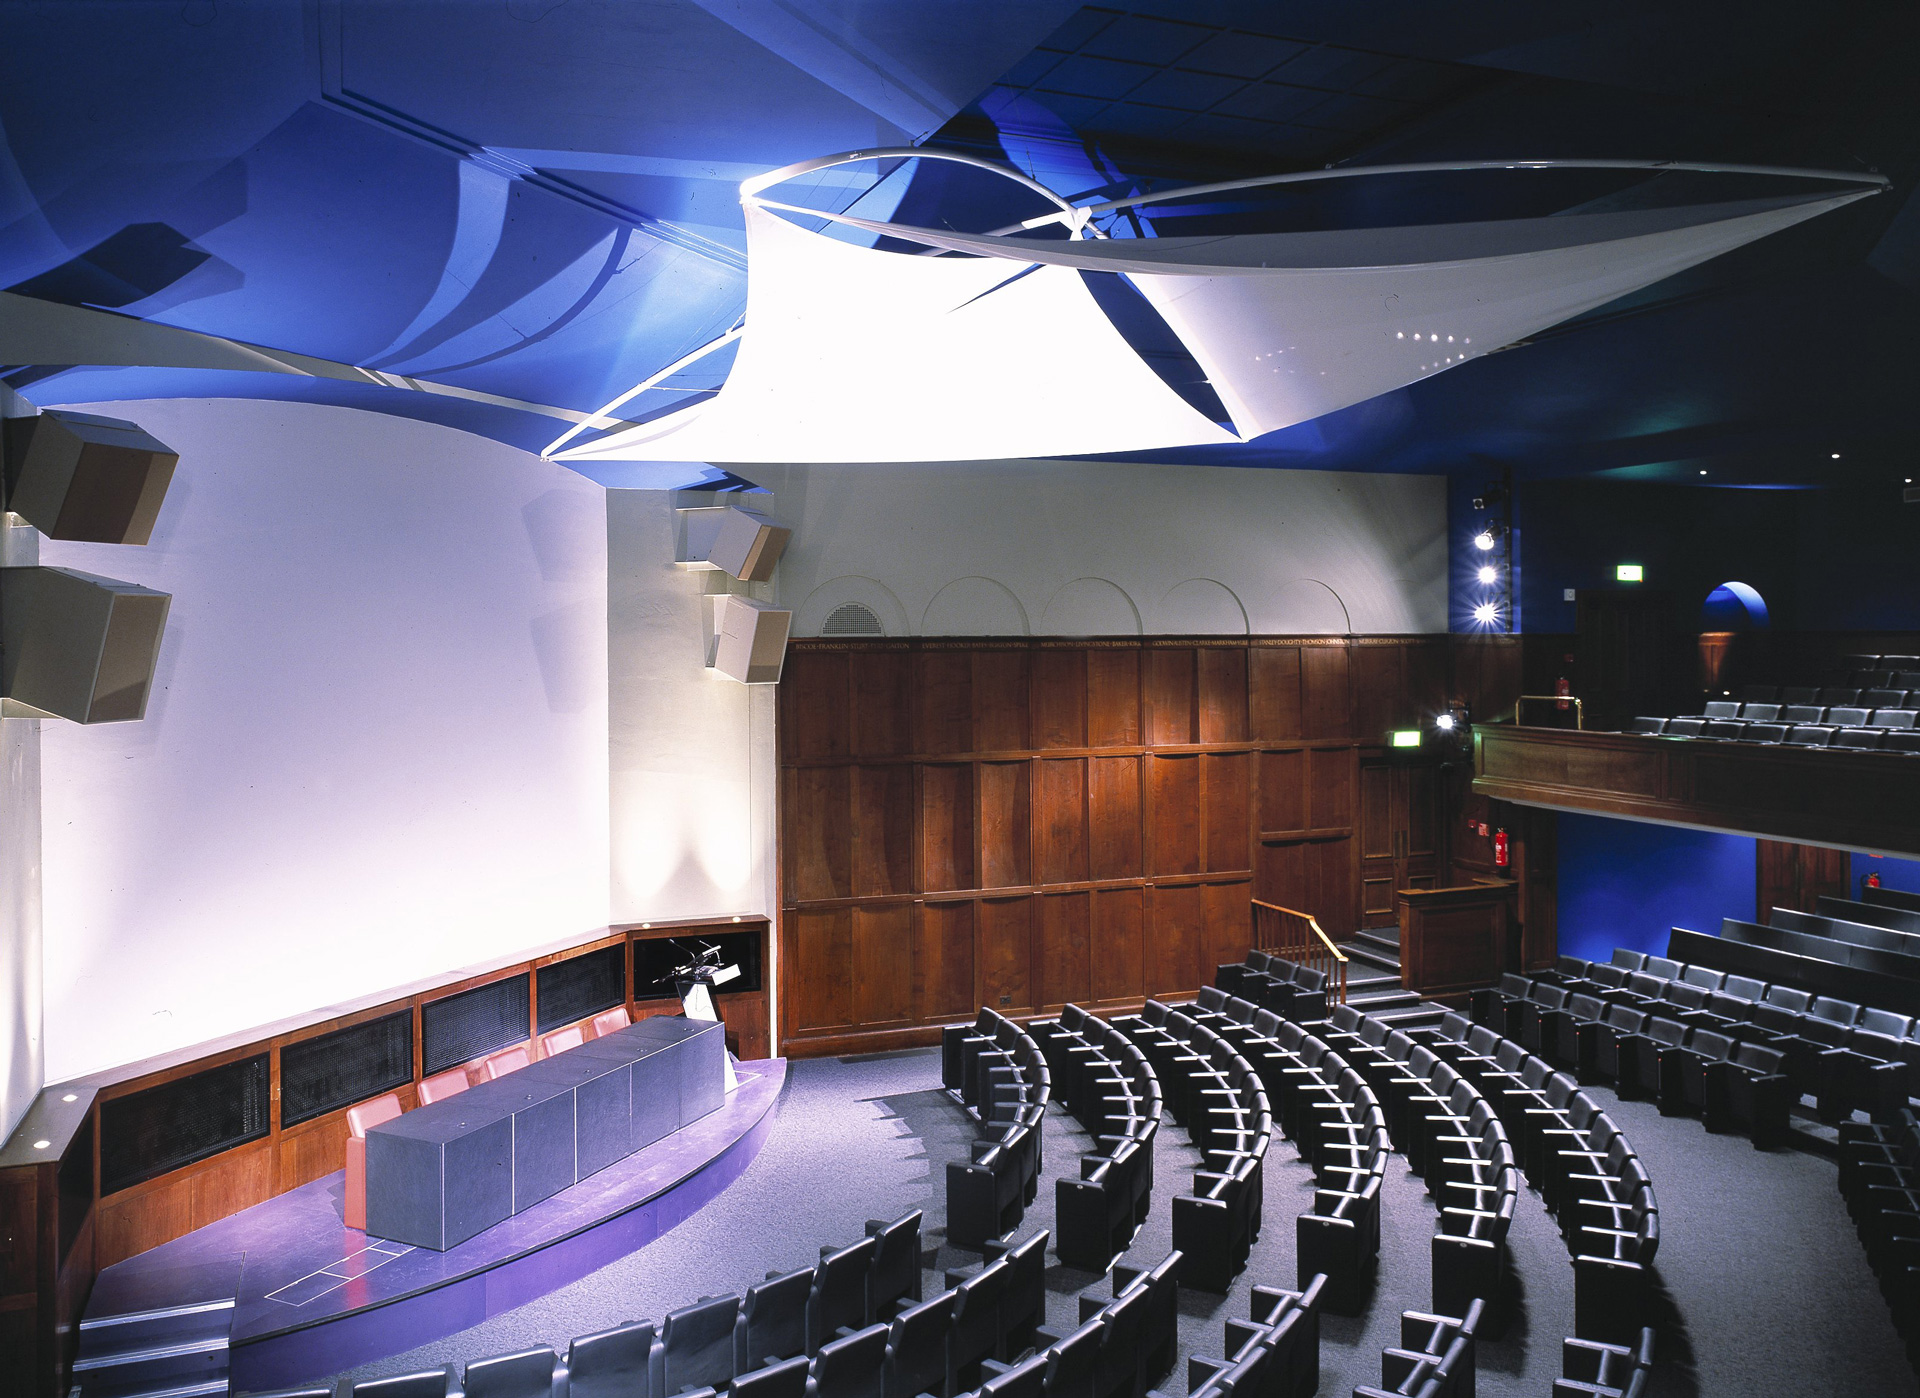 Ondaatje Theatre – Royal Geographical Society (IBG)